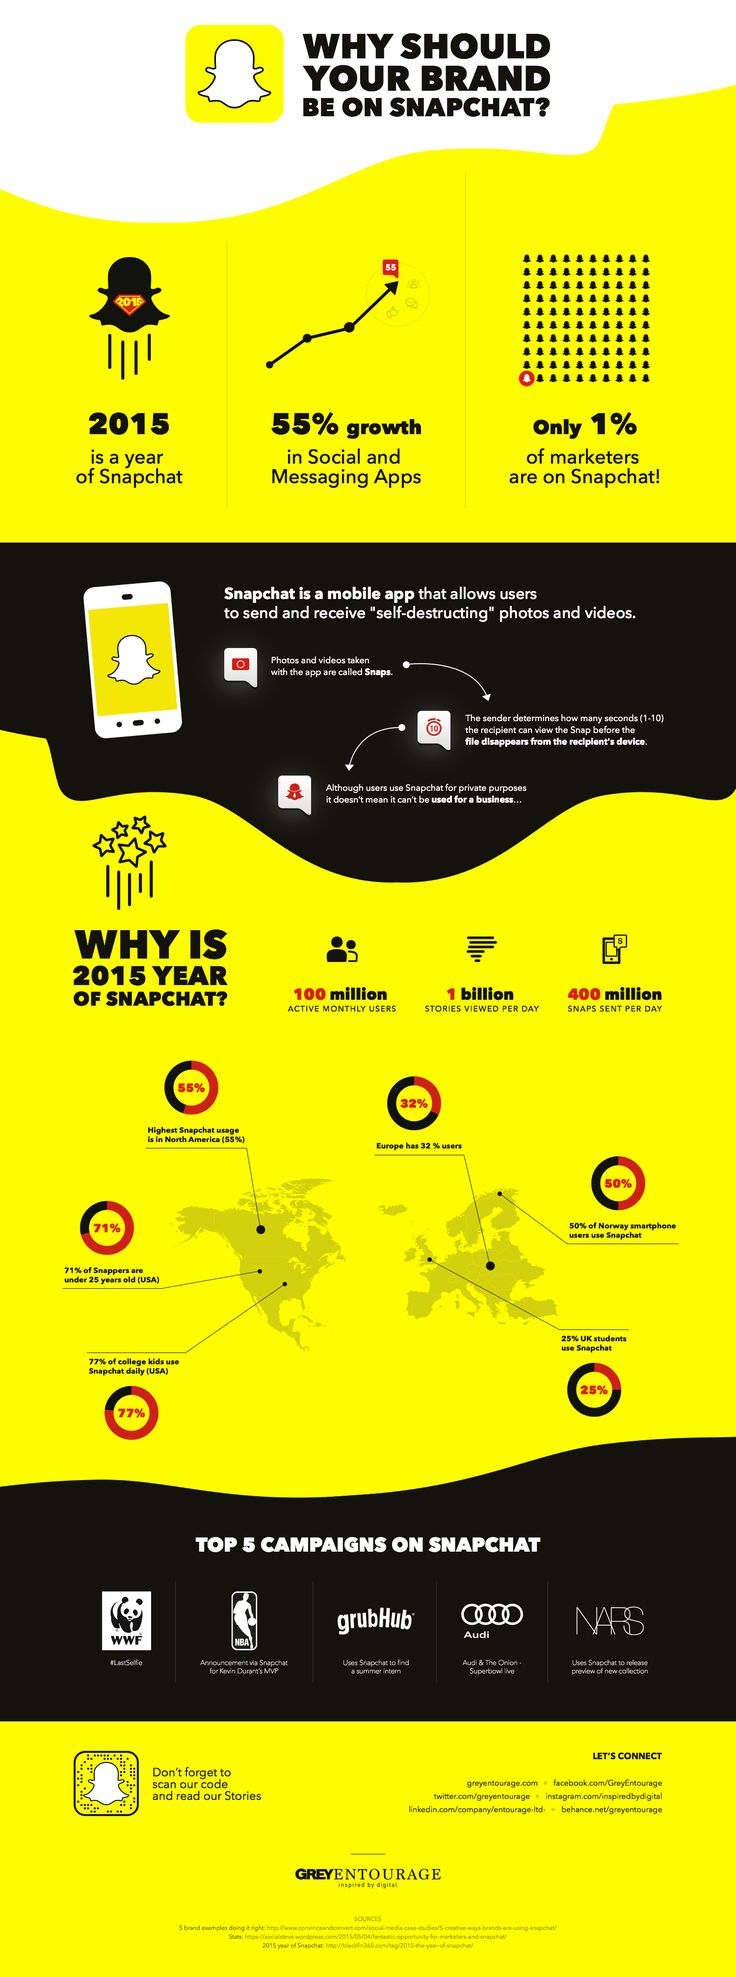 You know Snapchat is all the rage, but have you tried it out yet? Perhaps you're not getting the entire picture. There's some early chatter about how to use it, examples for churches, etc. And you should expect more to come for sure. I pulled together this collection of infographics to help tell the story …